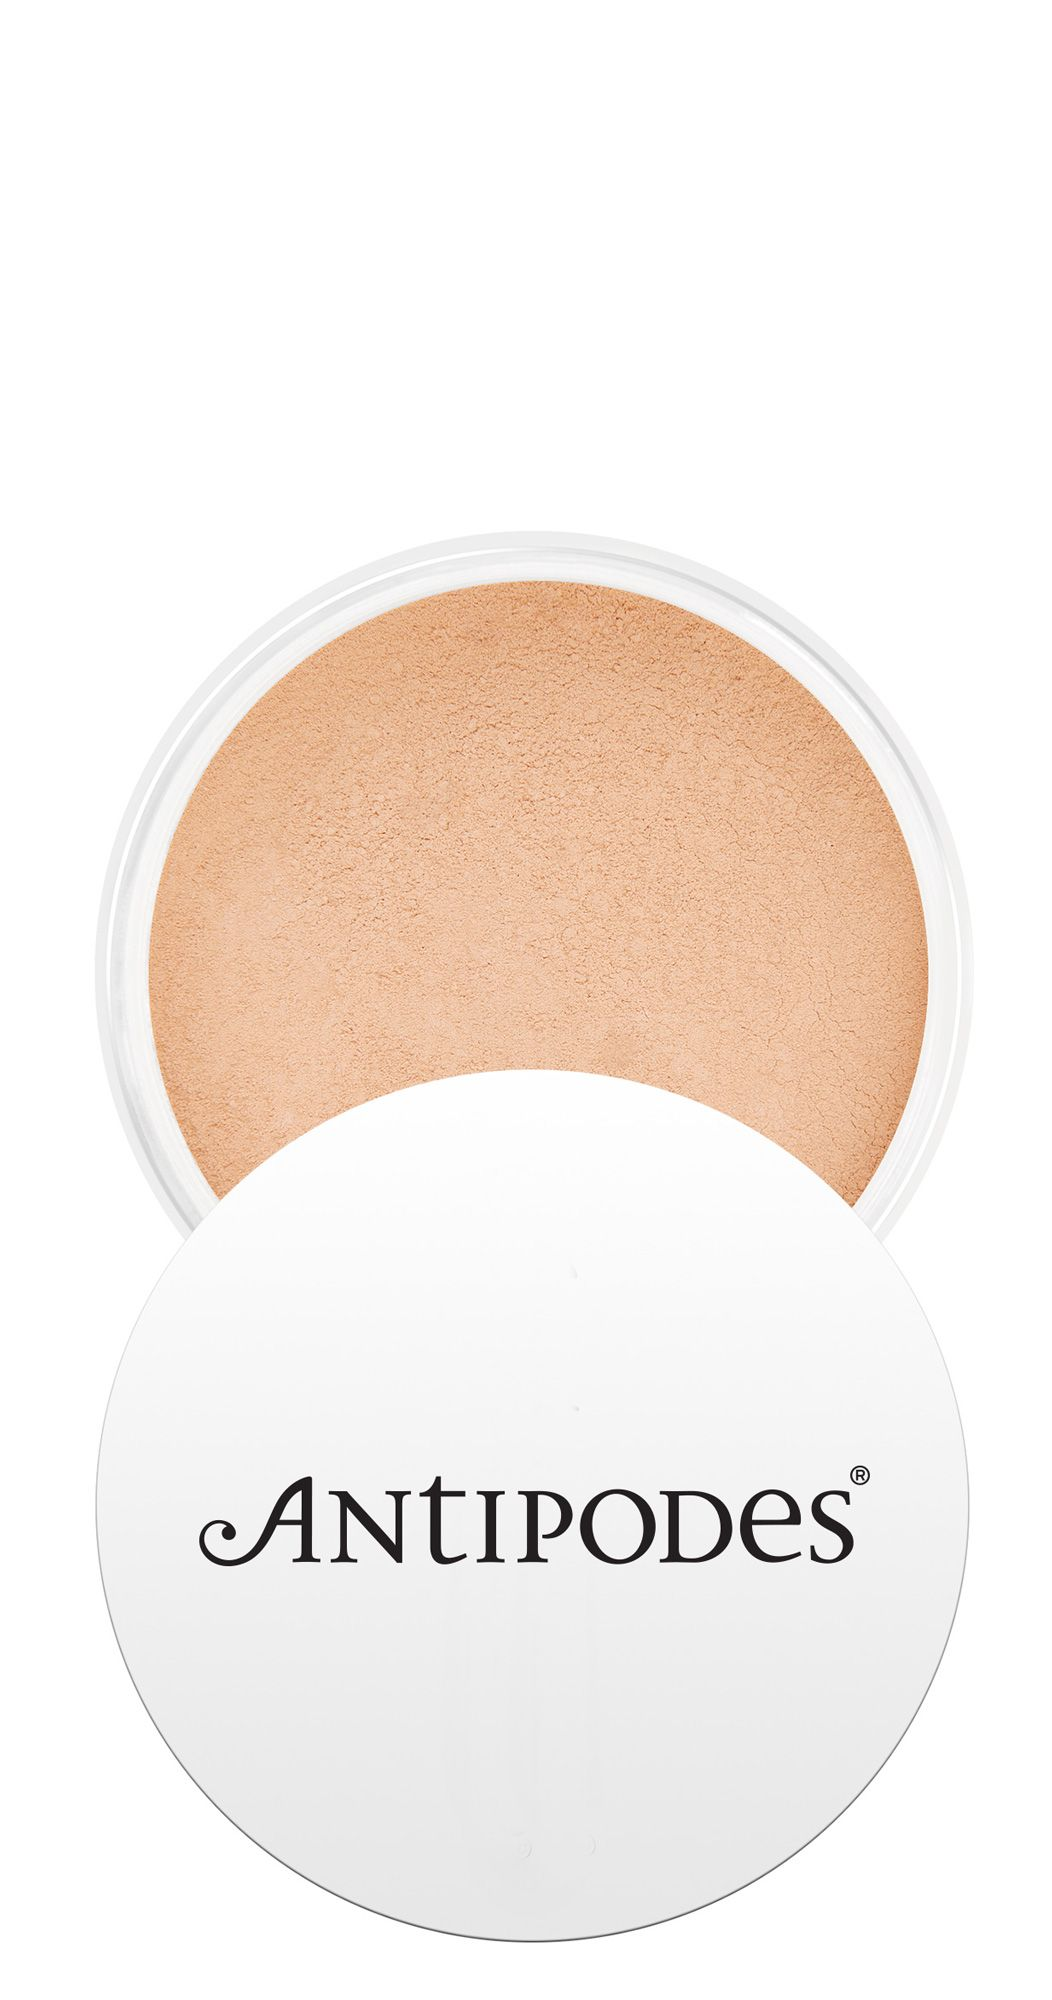 MEDIUM BEIGE MINERAL FOUNDATION (With images) Mineral